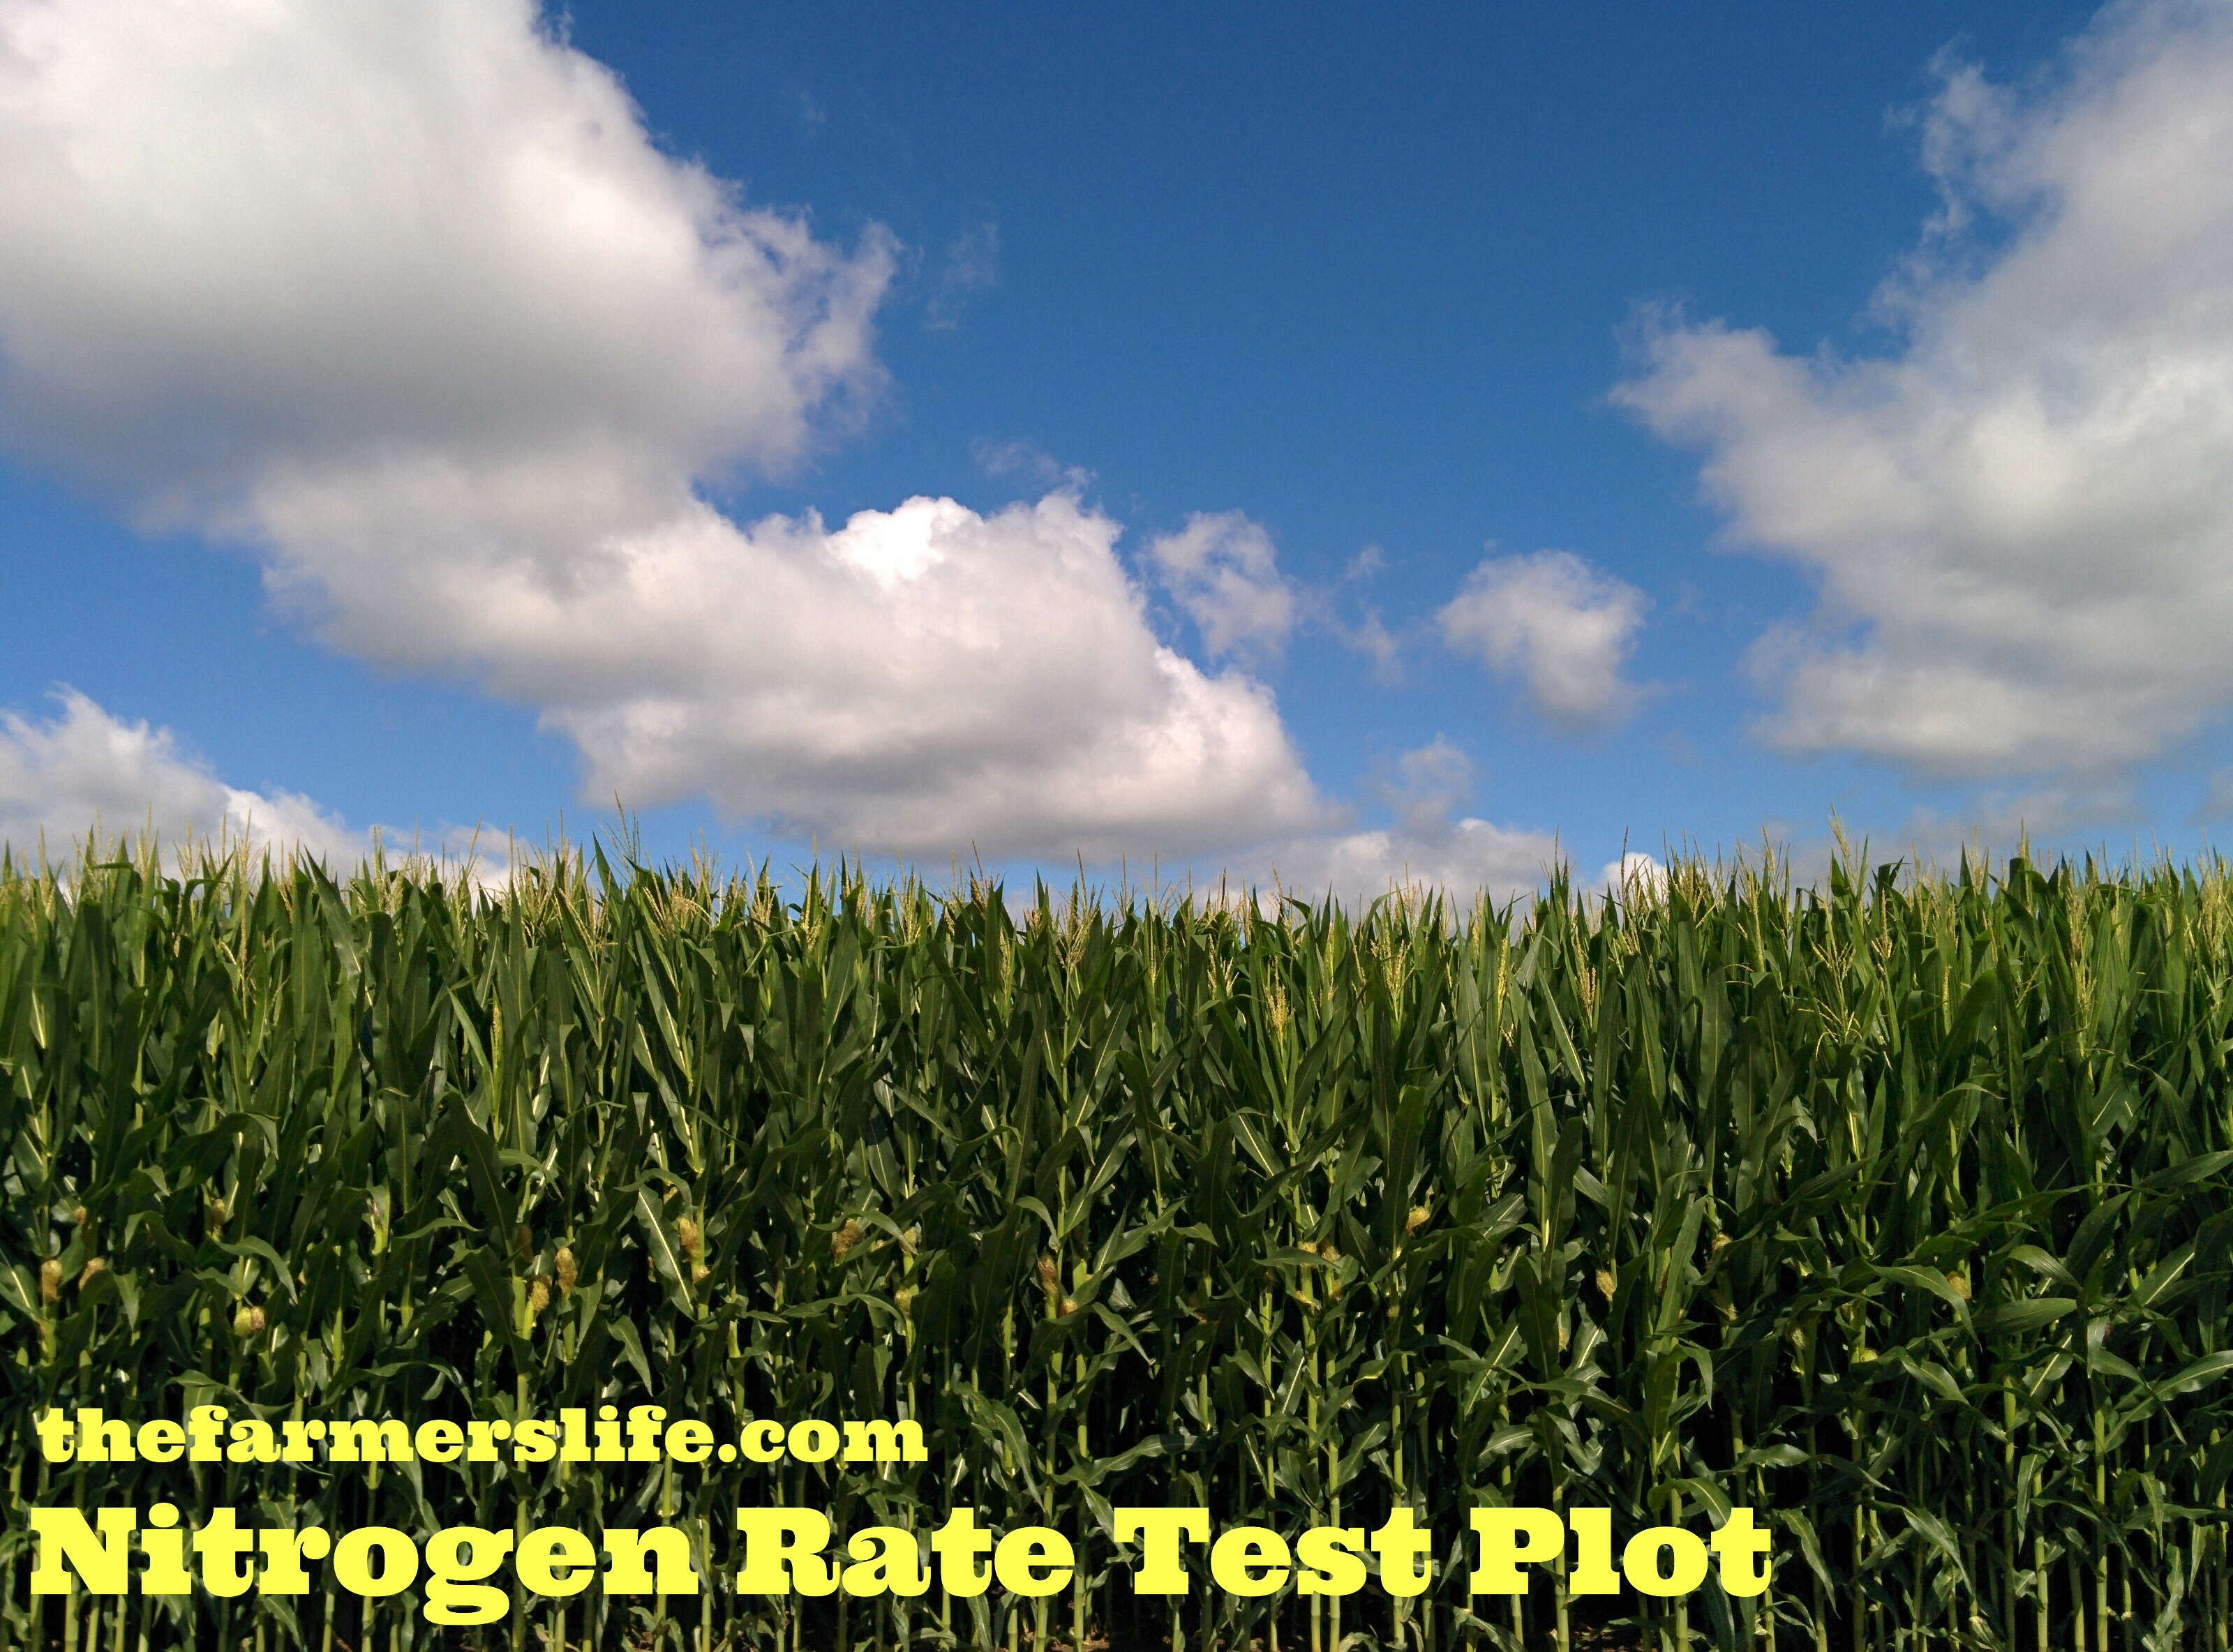 Corn sidedress nitrogen rate test the farmers life corn nitrogen test plot via thefarmerslife nvjuhfo Images